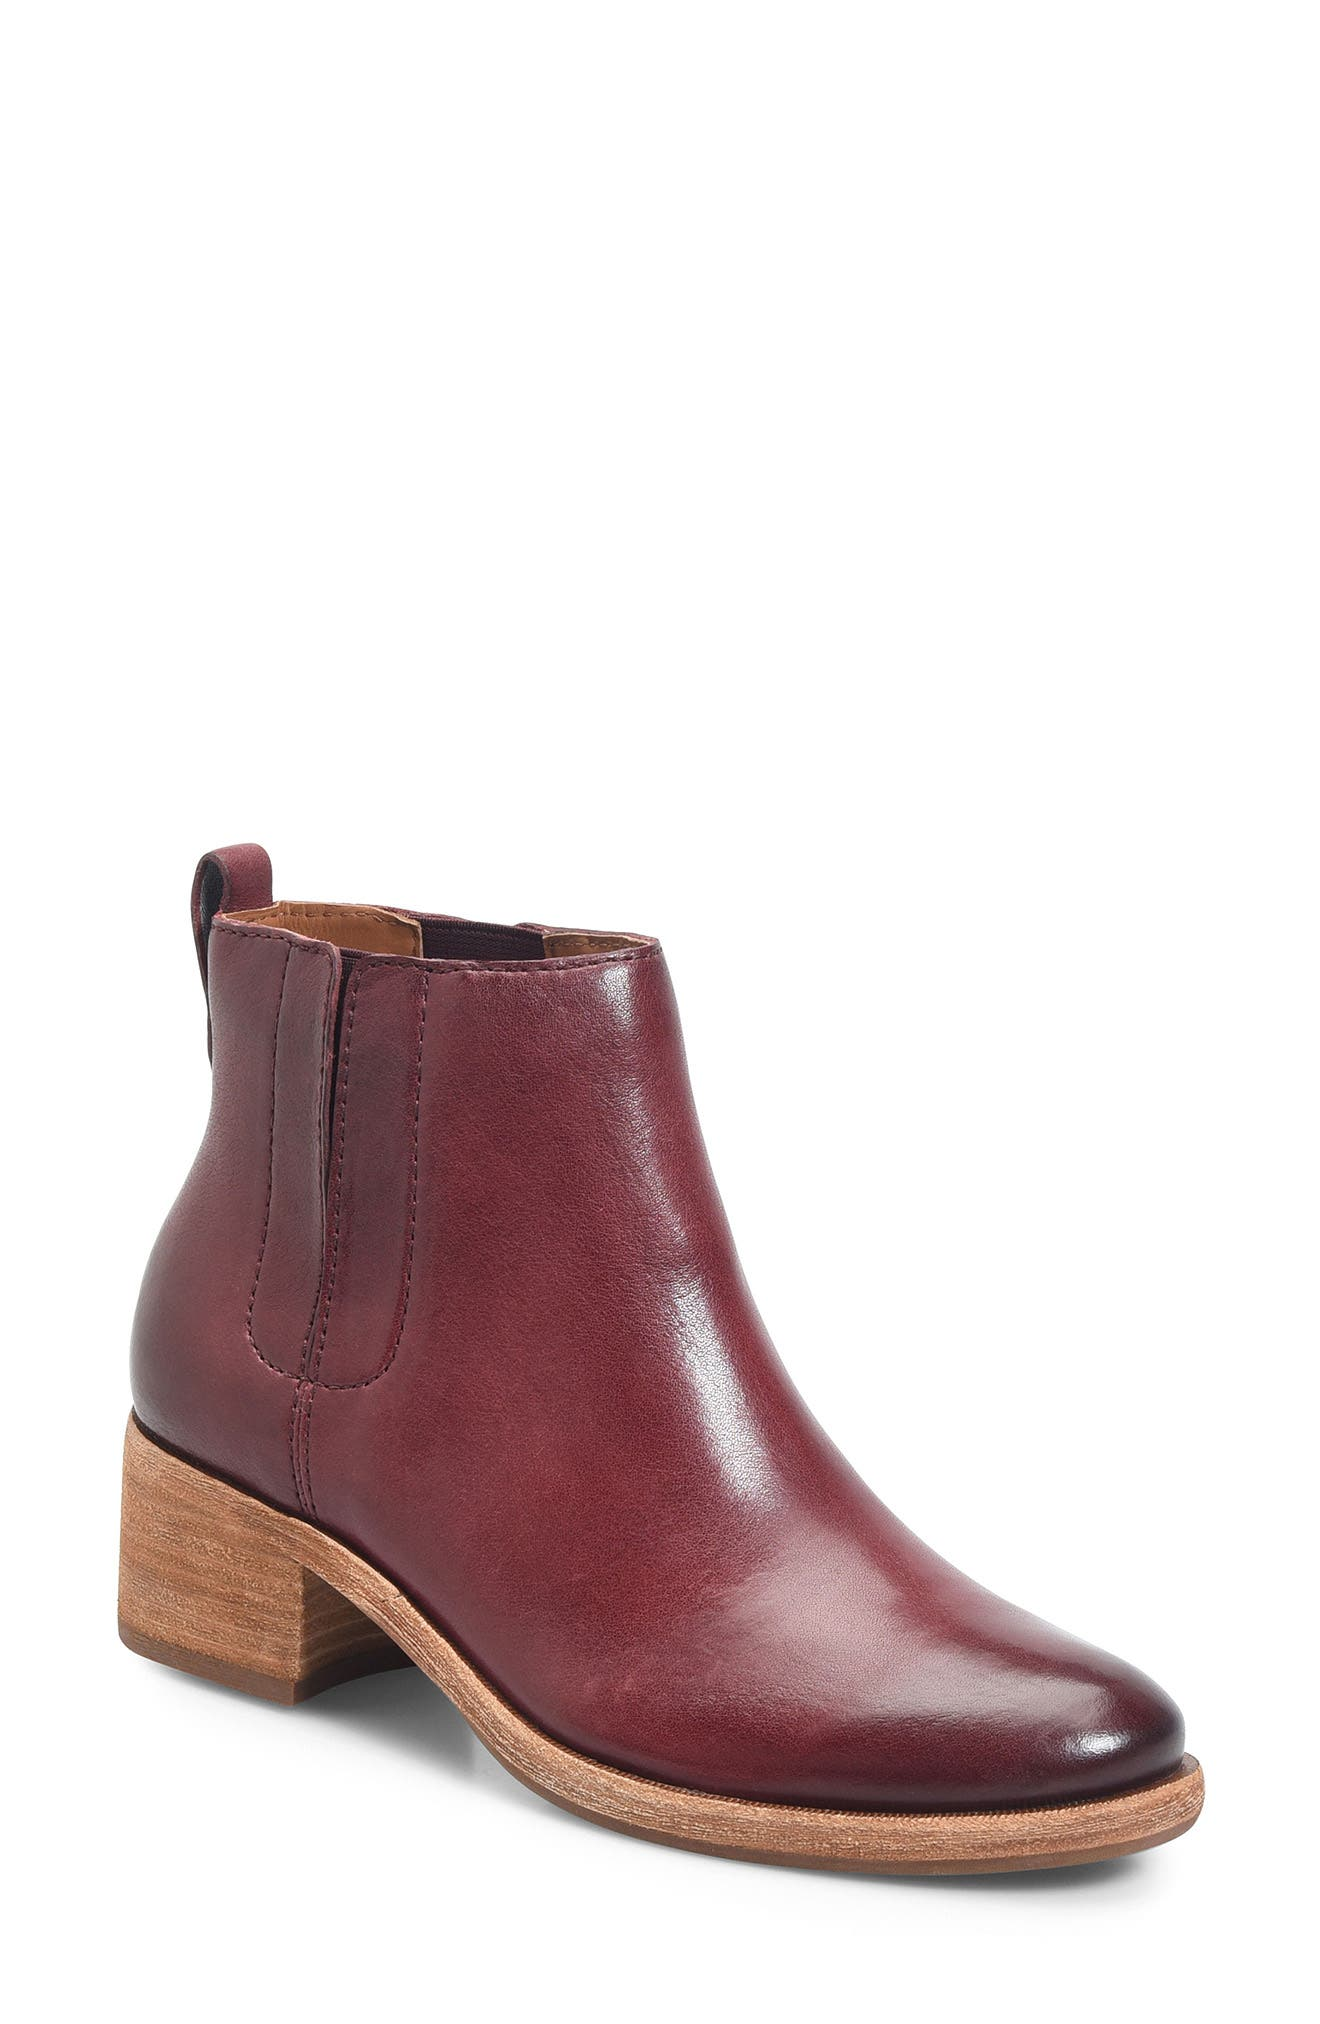 Mindo Chelsea Bootie,                             Main thumbnail 1, color,                             Burgundy Leather